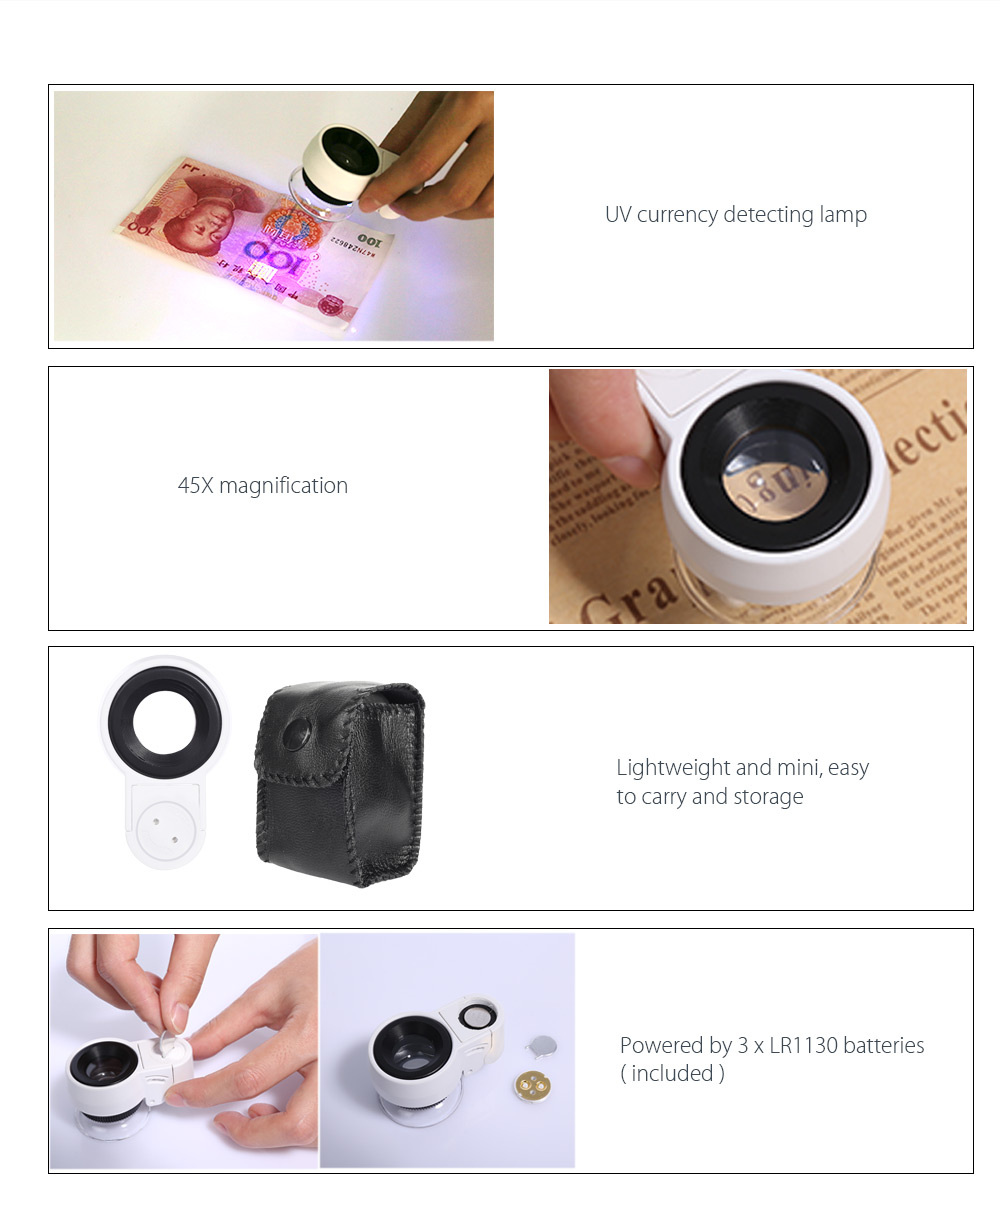 Beileshi Mini 45X Adjustable Magnifying Glass Magnifier with LED UV Light for Jewelry Antiques Gems Stamps